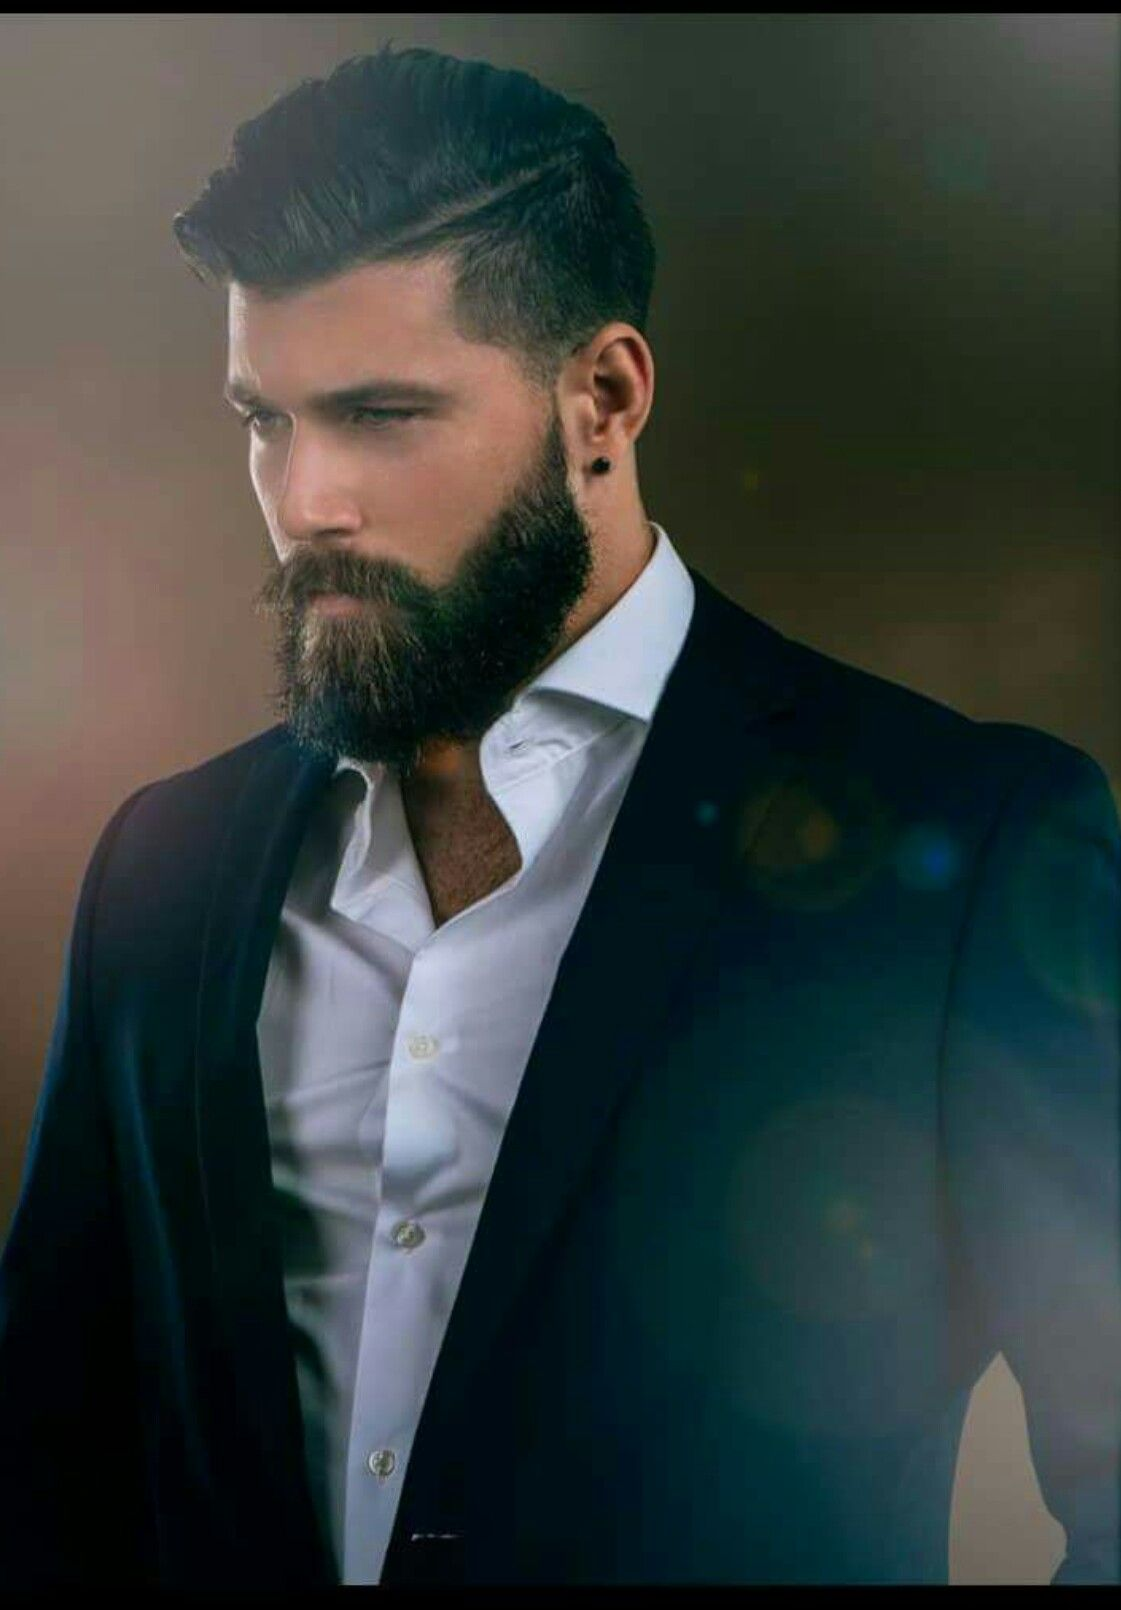 Just mens haircuts i think my panties just flew off  deshous  pinterest